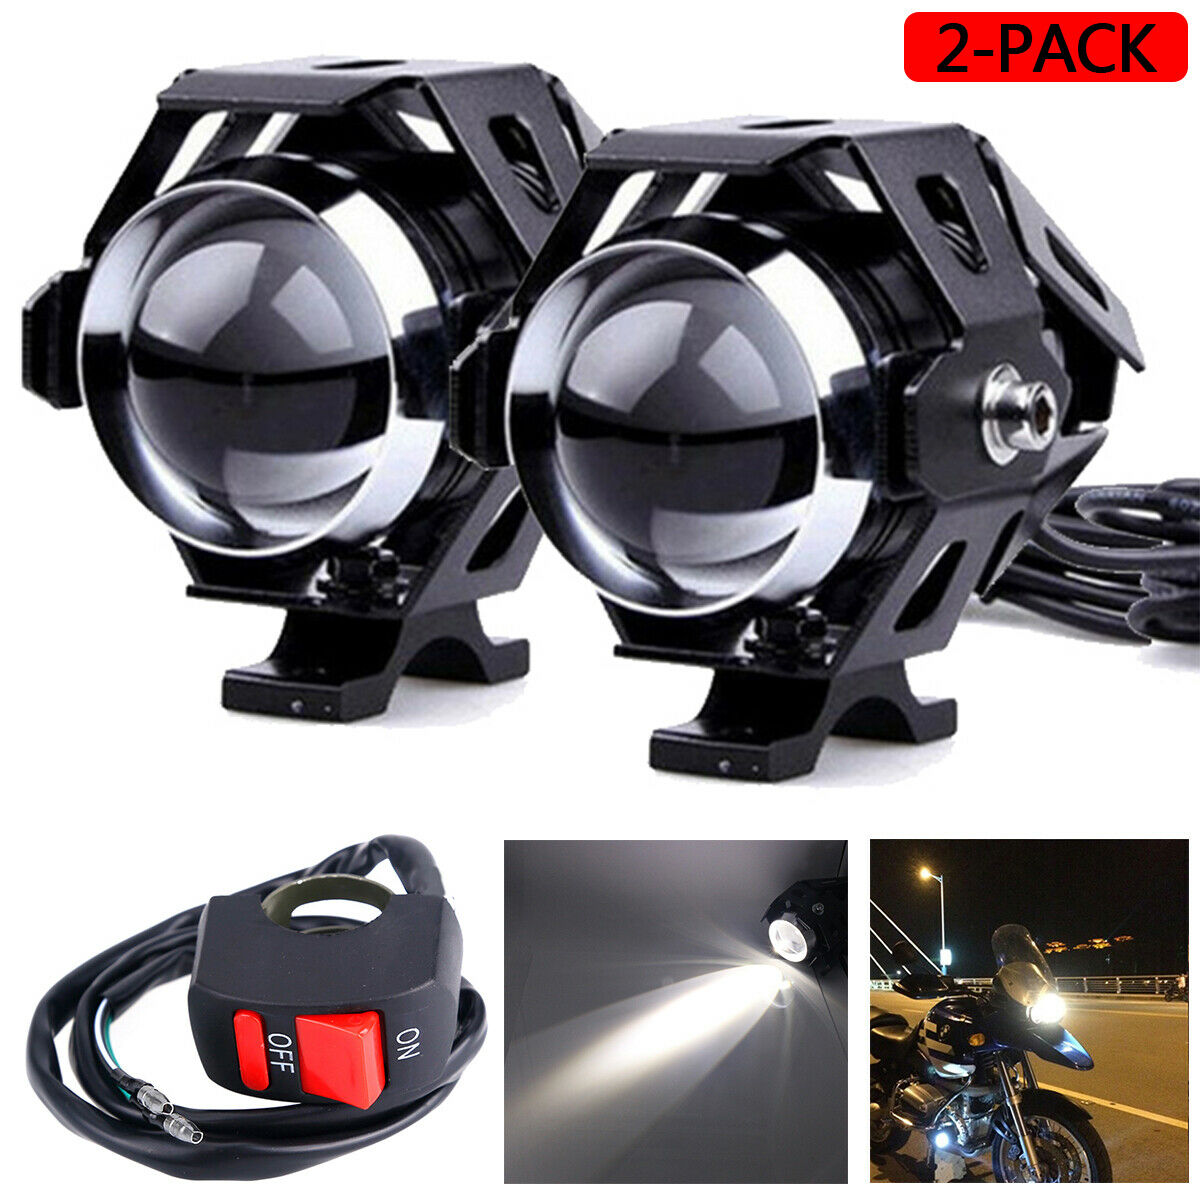 Wholesale Price 10Pieces 3000LM 125W U5 Low Beam Motorcycle Headlight LED Spot Lamp Add Switch Headlight LED Led Bar Offroad